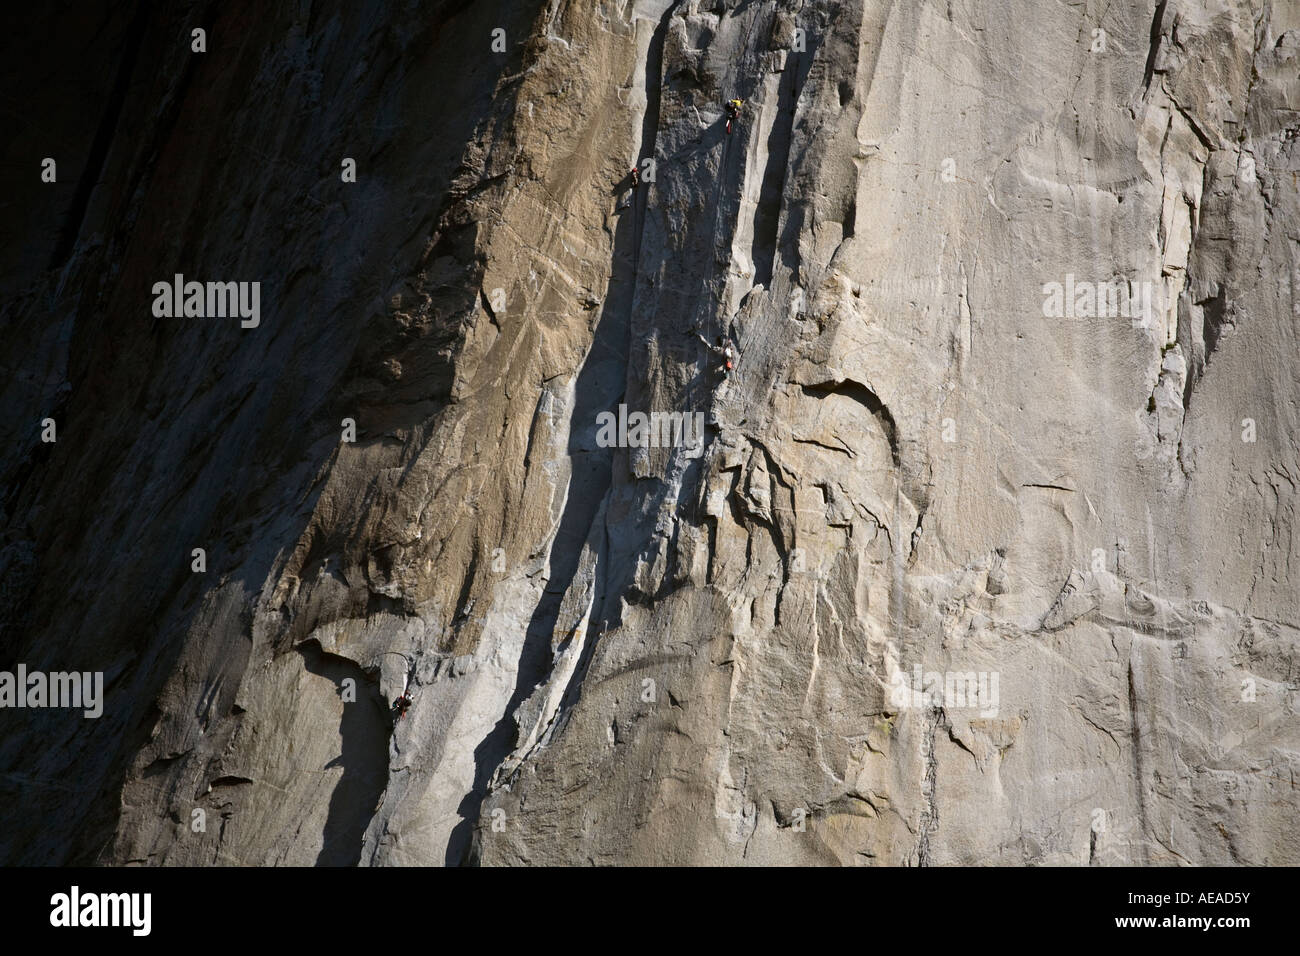 CLIMBERS on the face of EL CAPITAN in the YOSEMITE VALLEY